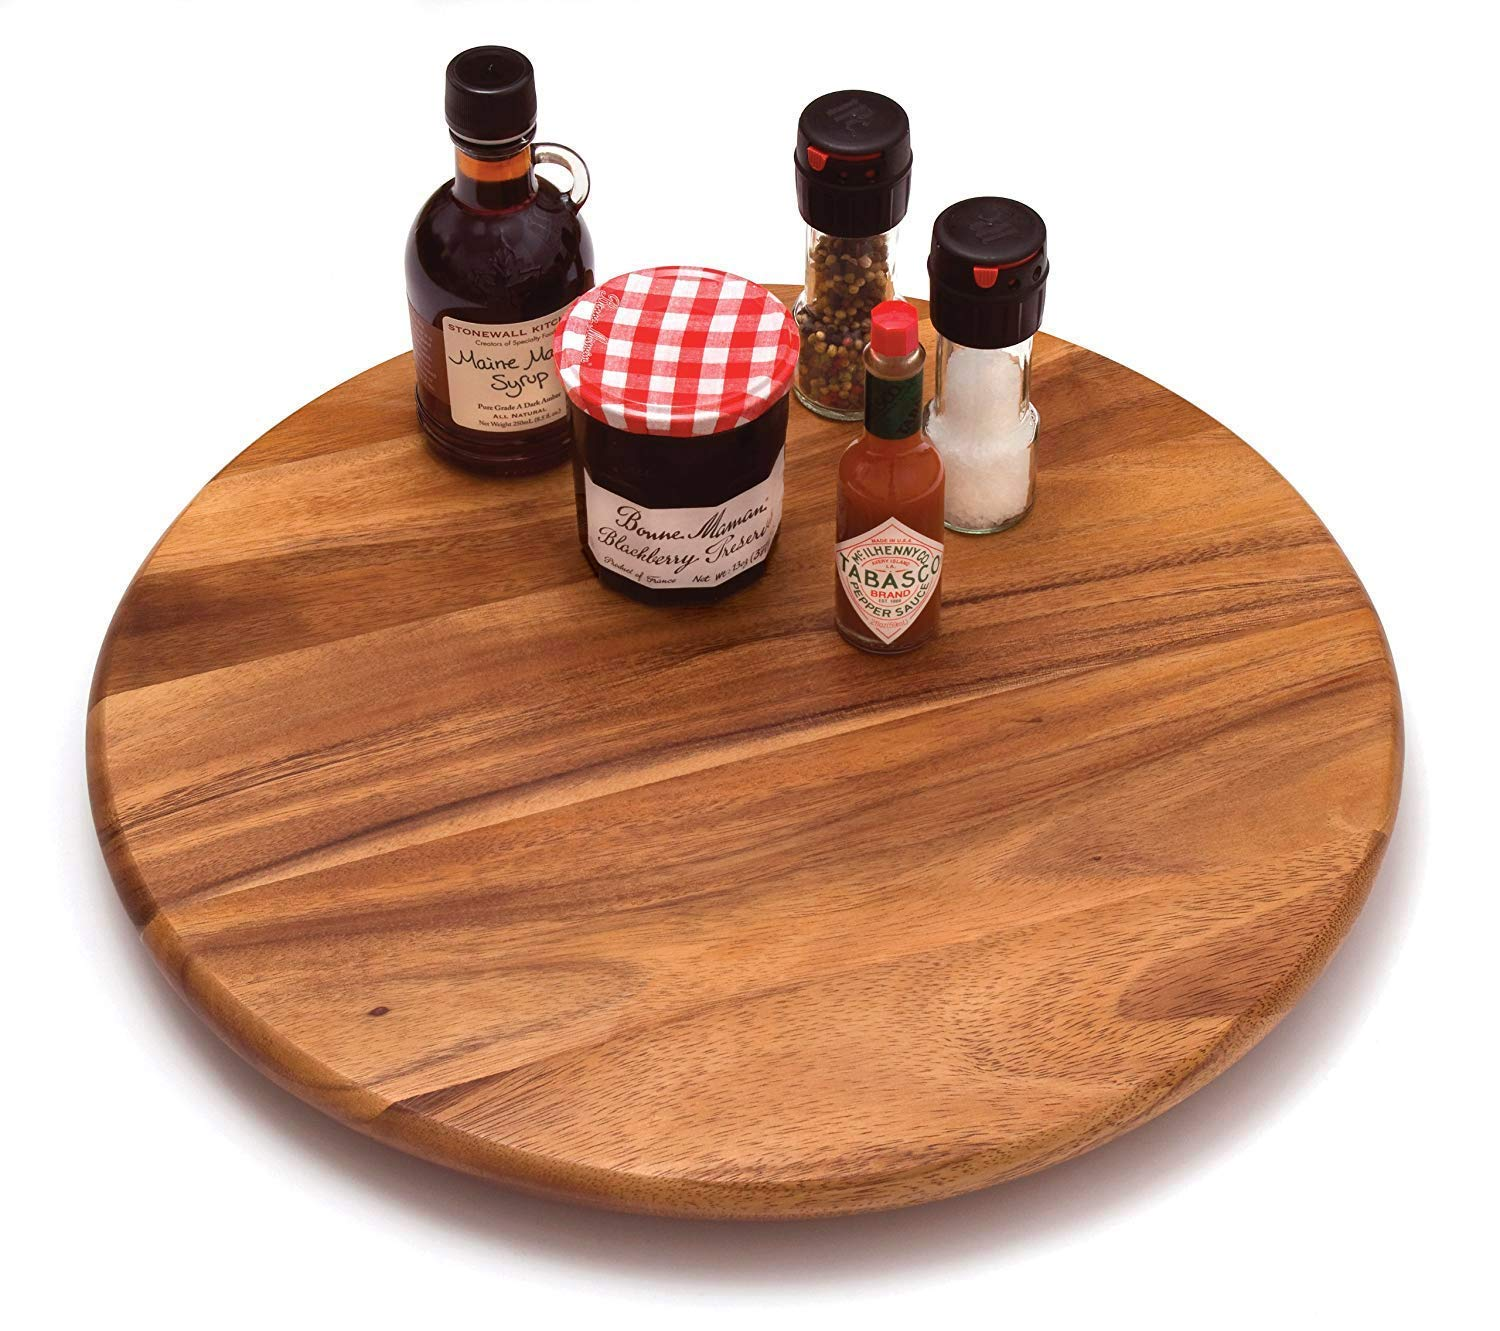 Lazy Susan Gift for Bride Personalized Gifts Gift for Wife Thoughtful Gifts Custom Wedding Gift Engraved Wood Gifts Personalized Wedding Gifts Wedding Shower Gift